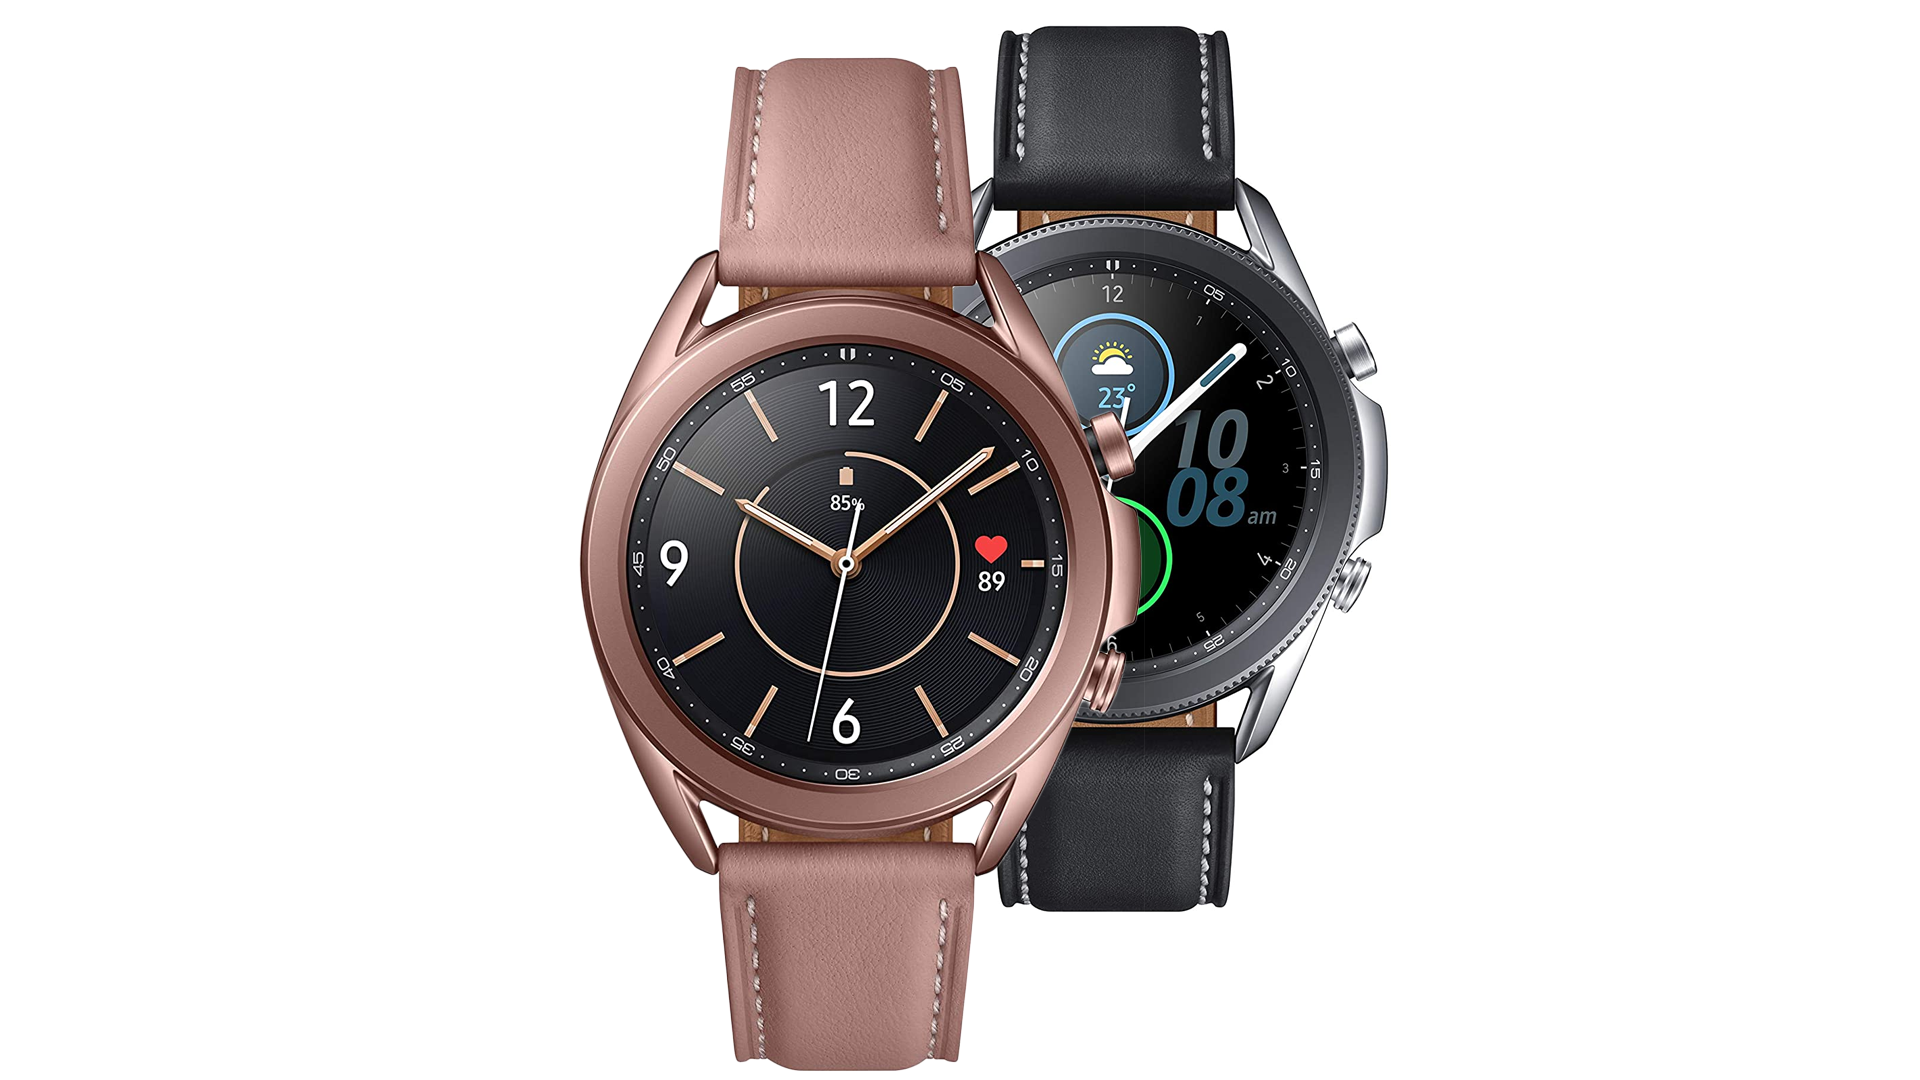 A photo of the Samsumg Galaxy Watch 3 in black and mystic bronze.